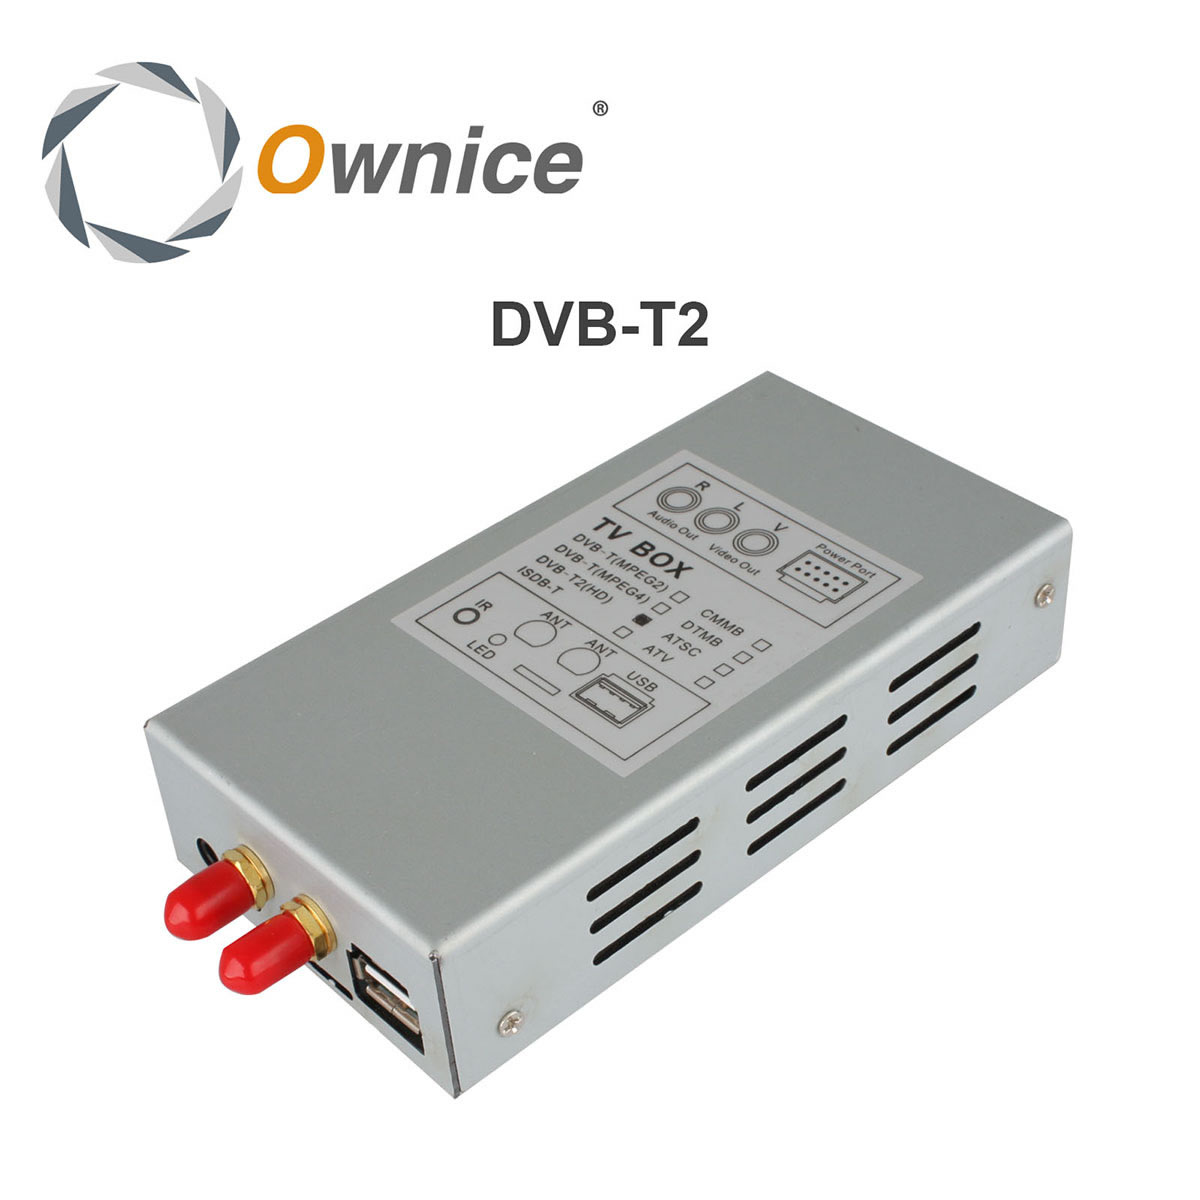 Special DVB-T2 Digital Box for Ownice Car DVD Player For Russia Thailand Malaysia area. The item just for our DVD special dvb t mpeg4 tv box tuners for ownice car dvd player the item just for our dvd